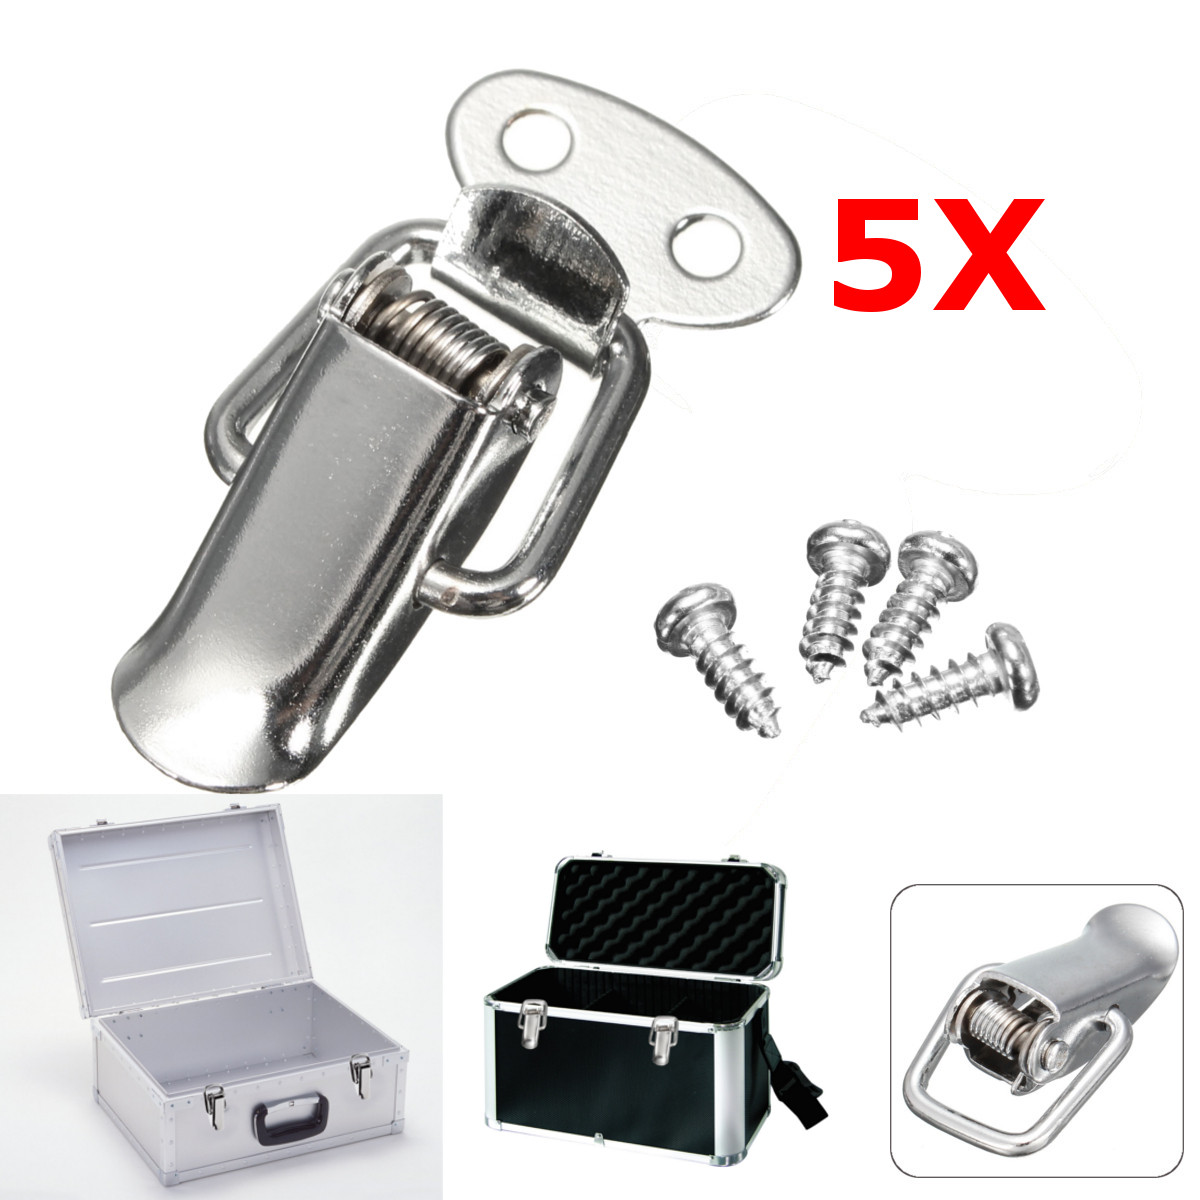 купить Wholesale 5Pcs/Set Stainless Steel Hardware Cabinet Box Case Spring Loaded Latch Catch Toggle Hasp For Home Office Shop